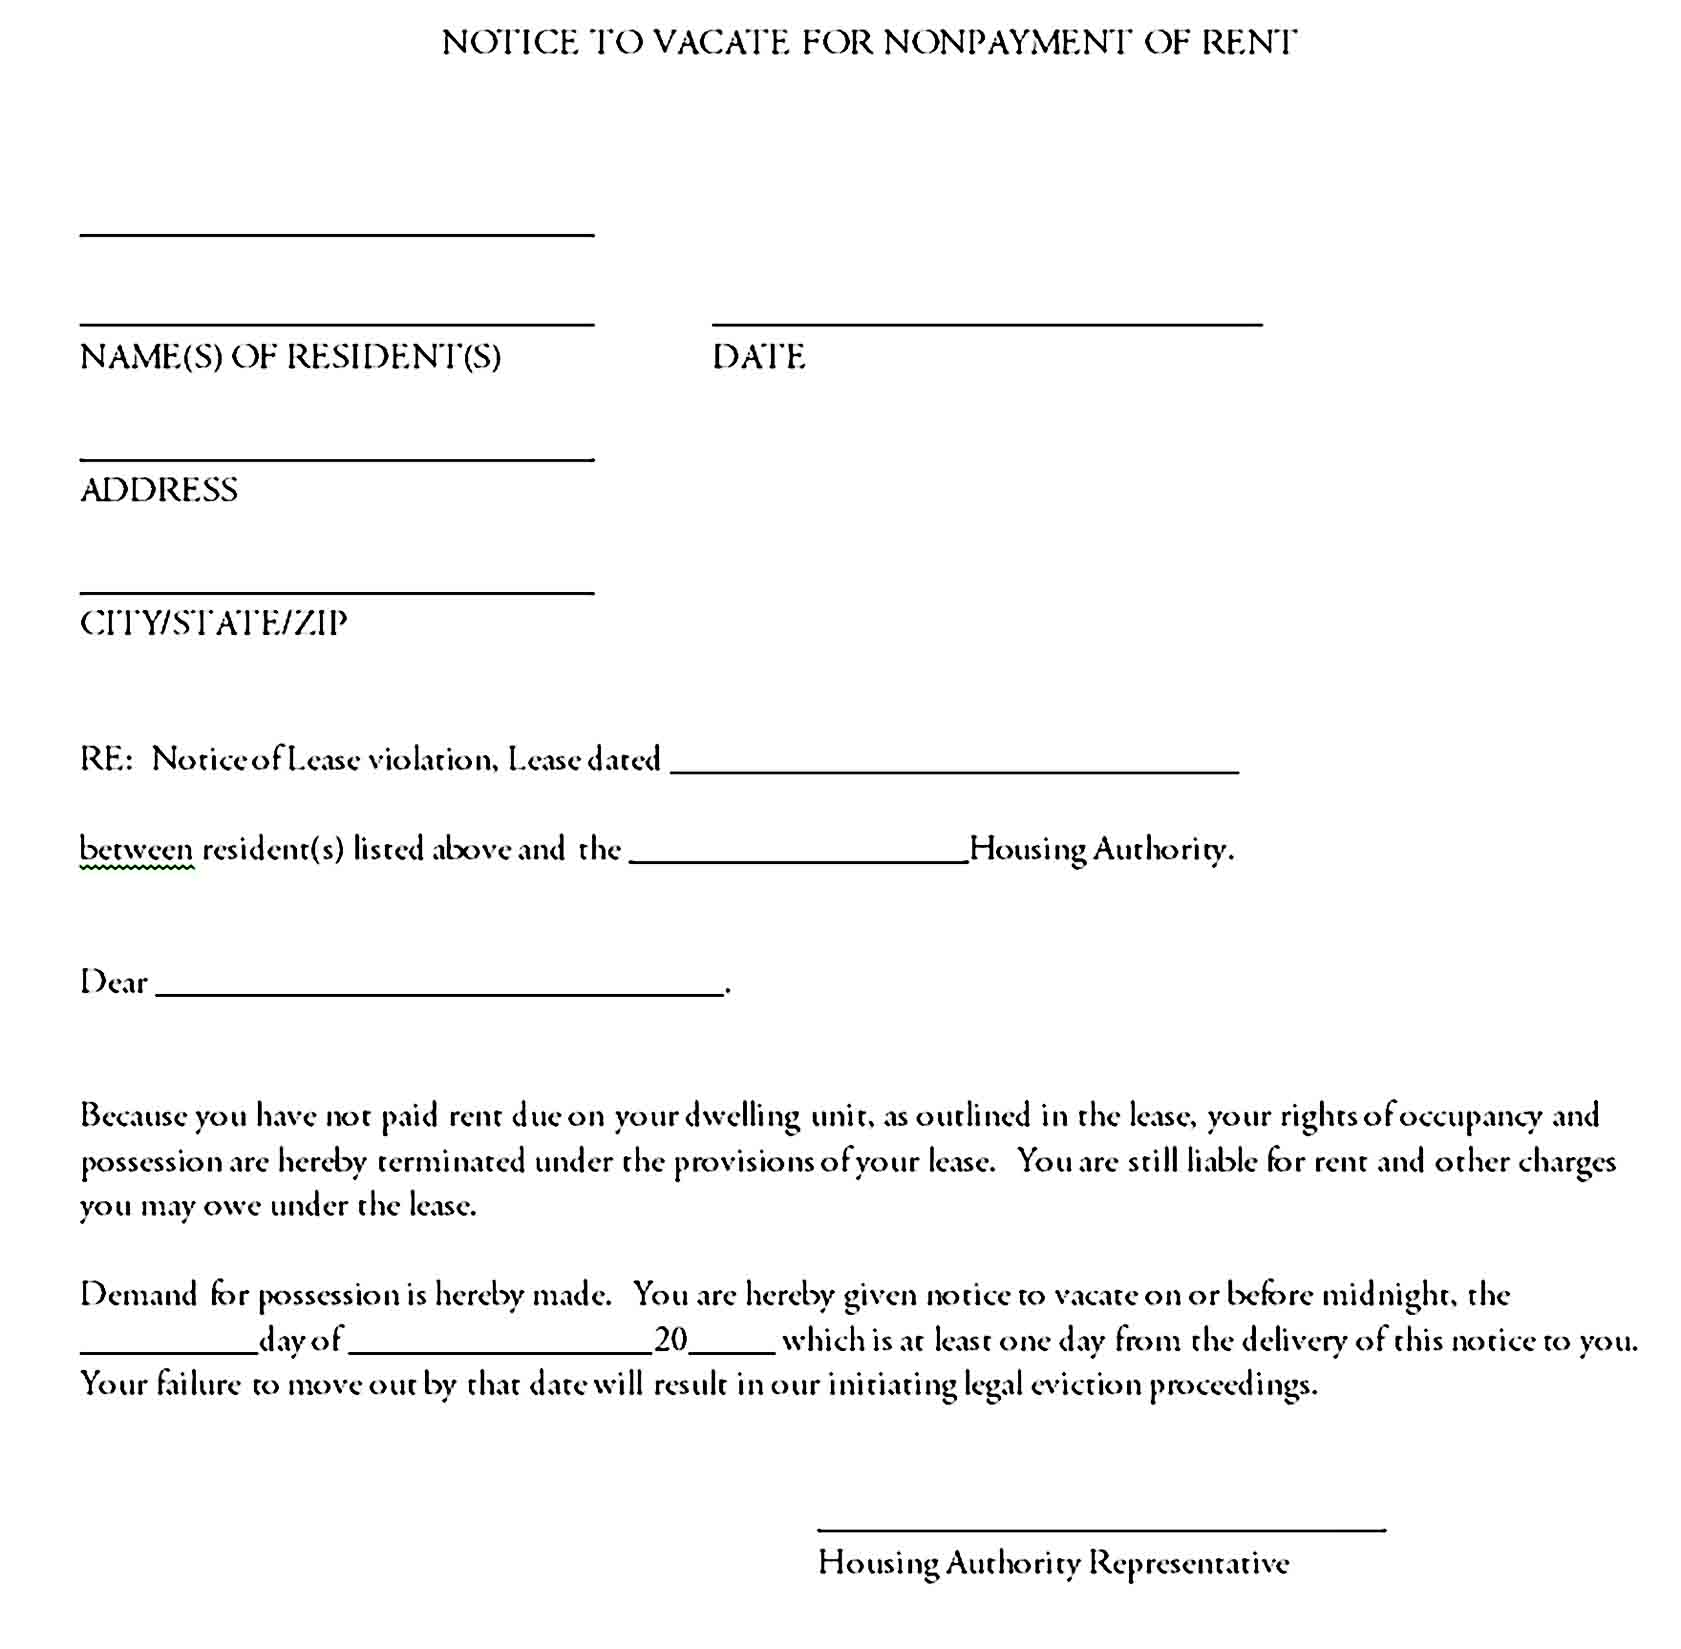 Notice to vacate for nonpayment of rent